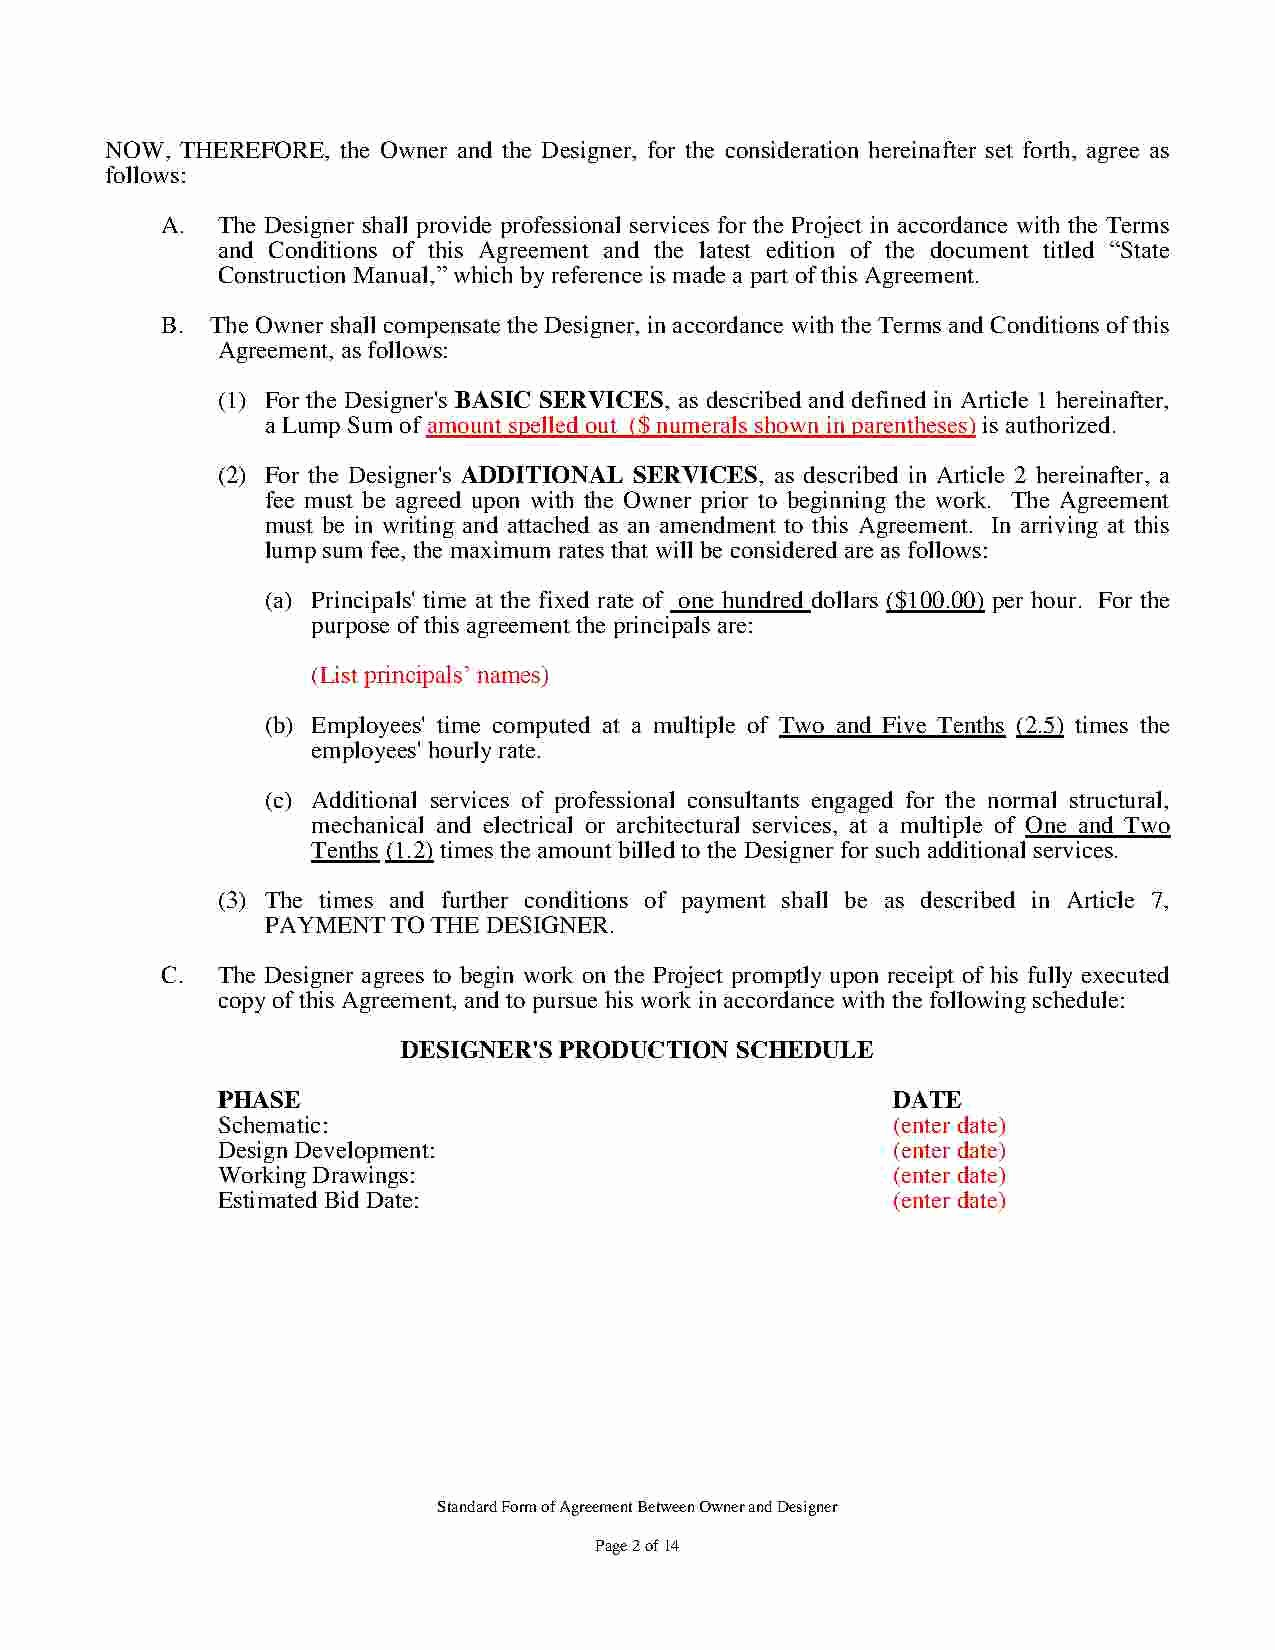 Interior Design Contract Templates Awesome Download Interior Design Contract Style 1 Template for